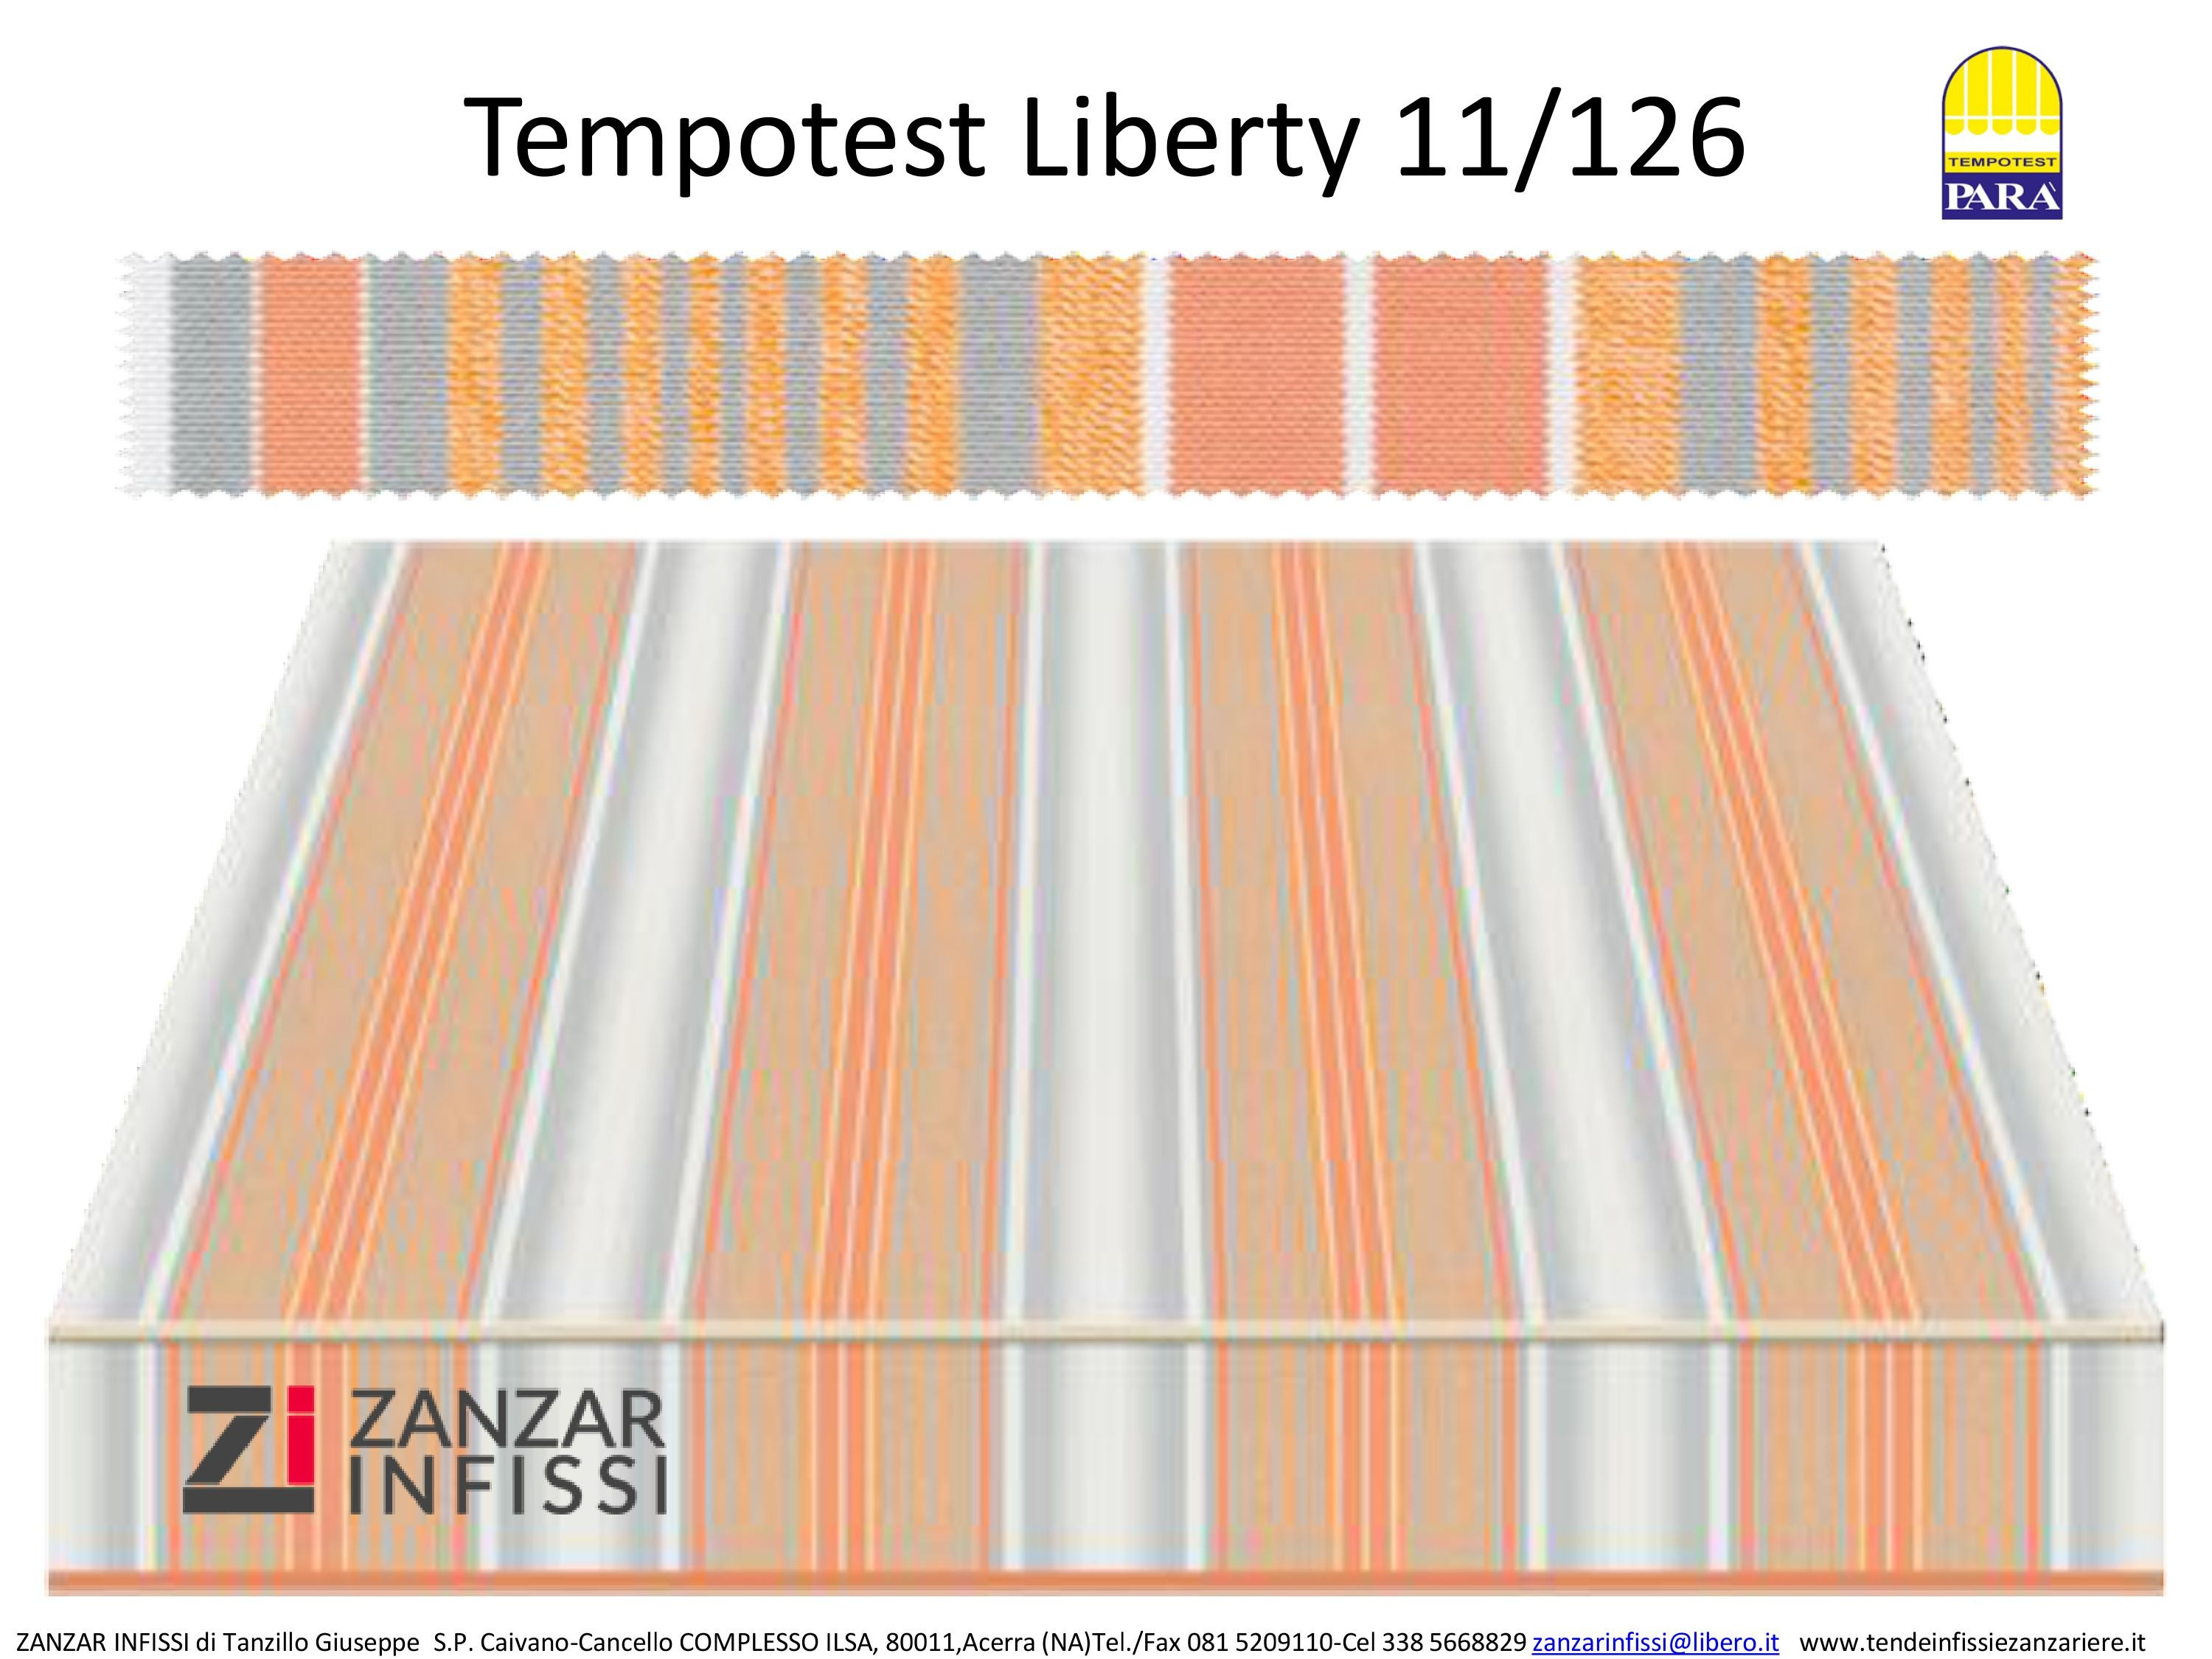 Tempotest Liberty 11/126